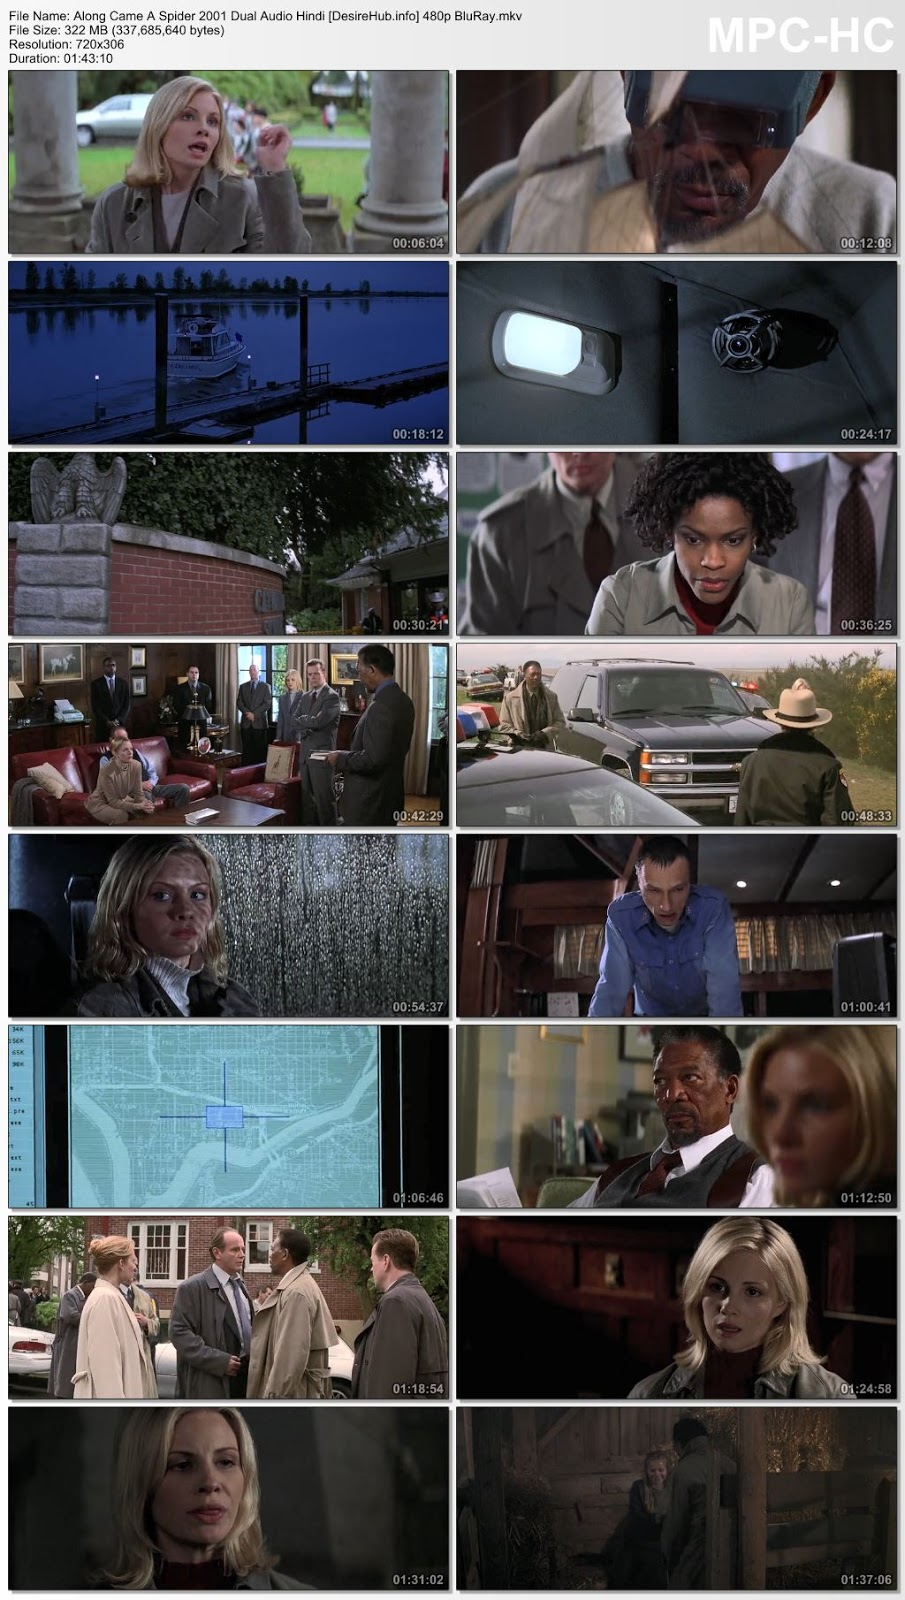 Along Came A Spider 2001 Dual Audio Hindi 480p BluRay 300MB Desirehub